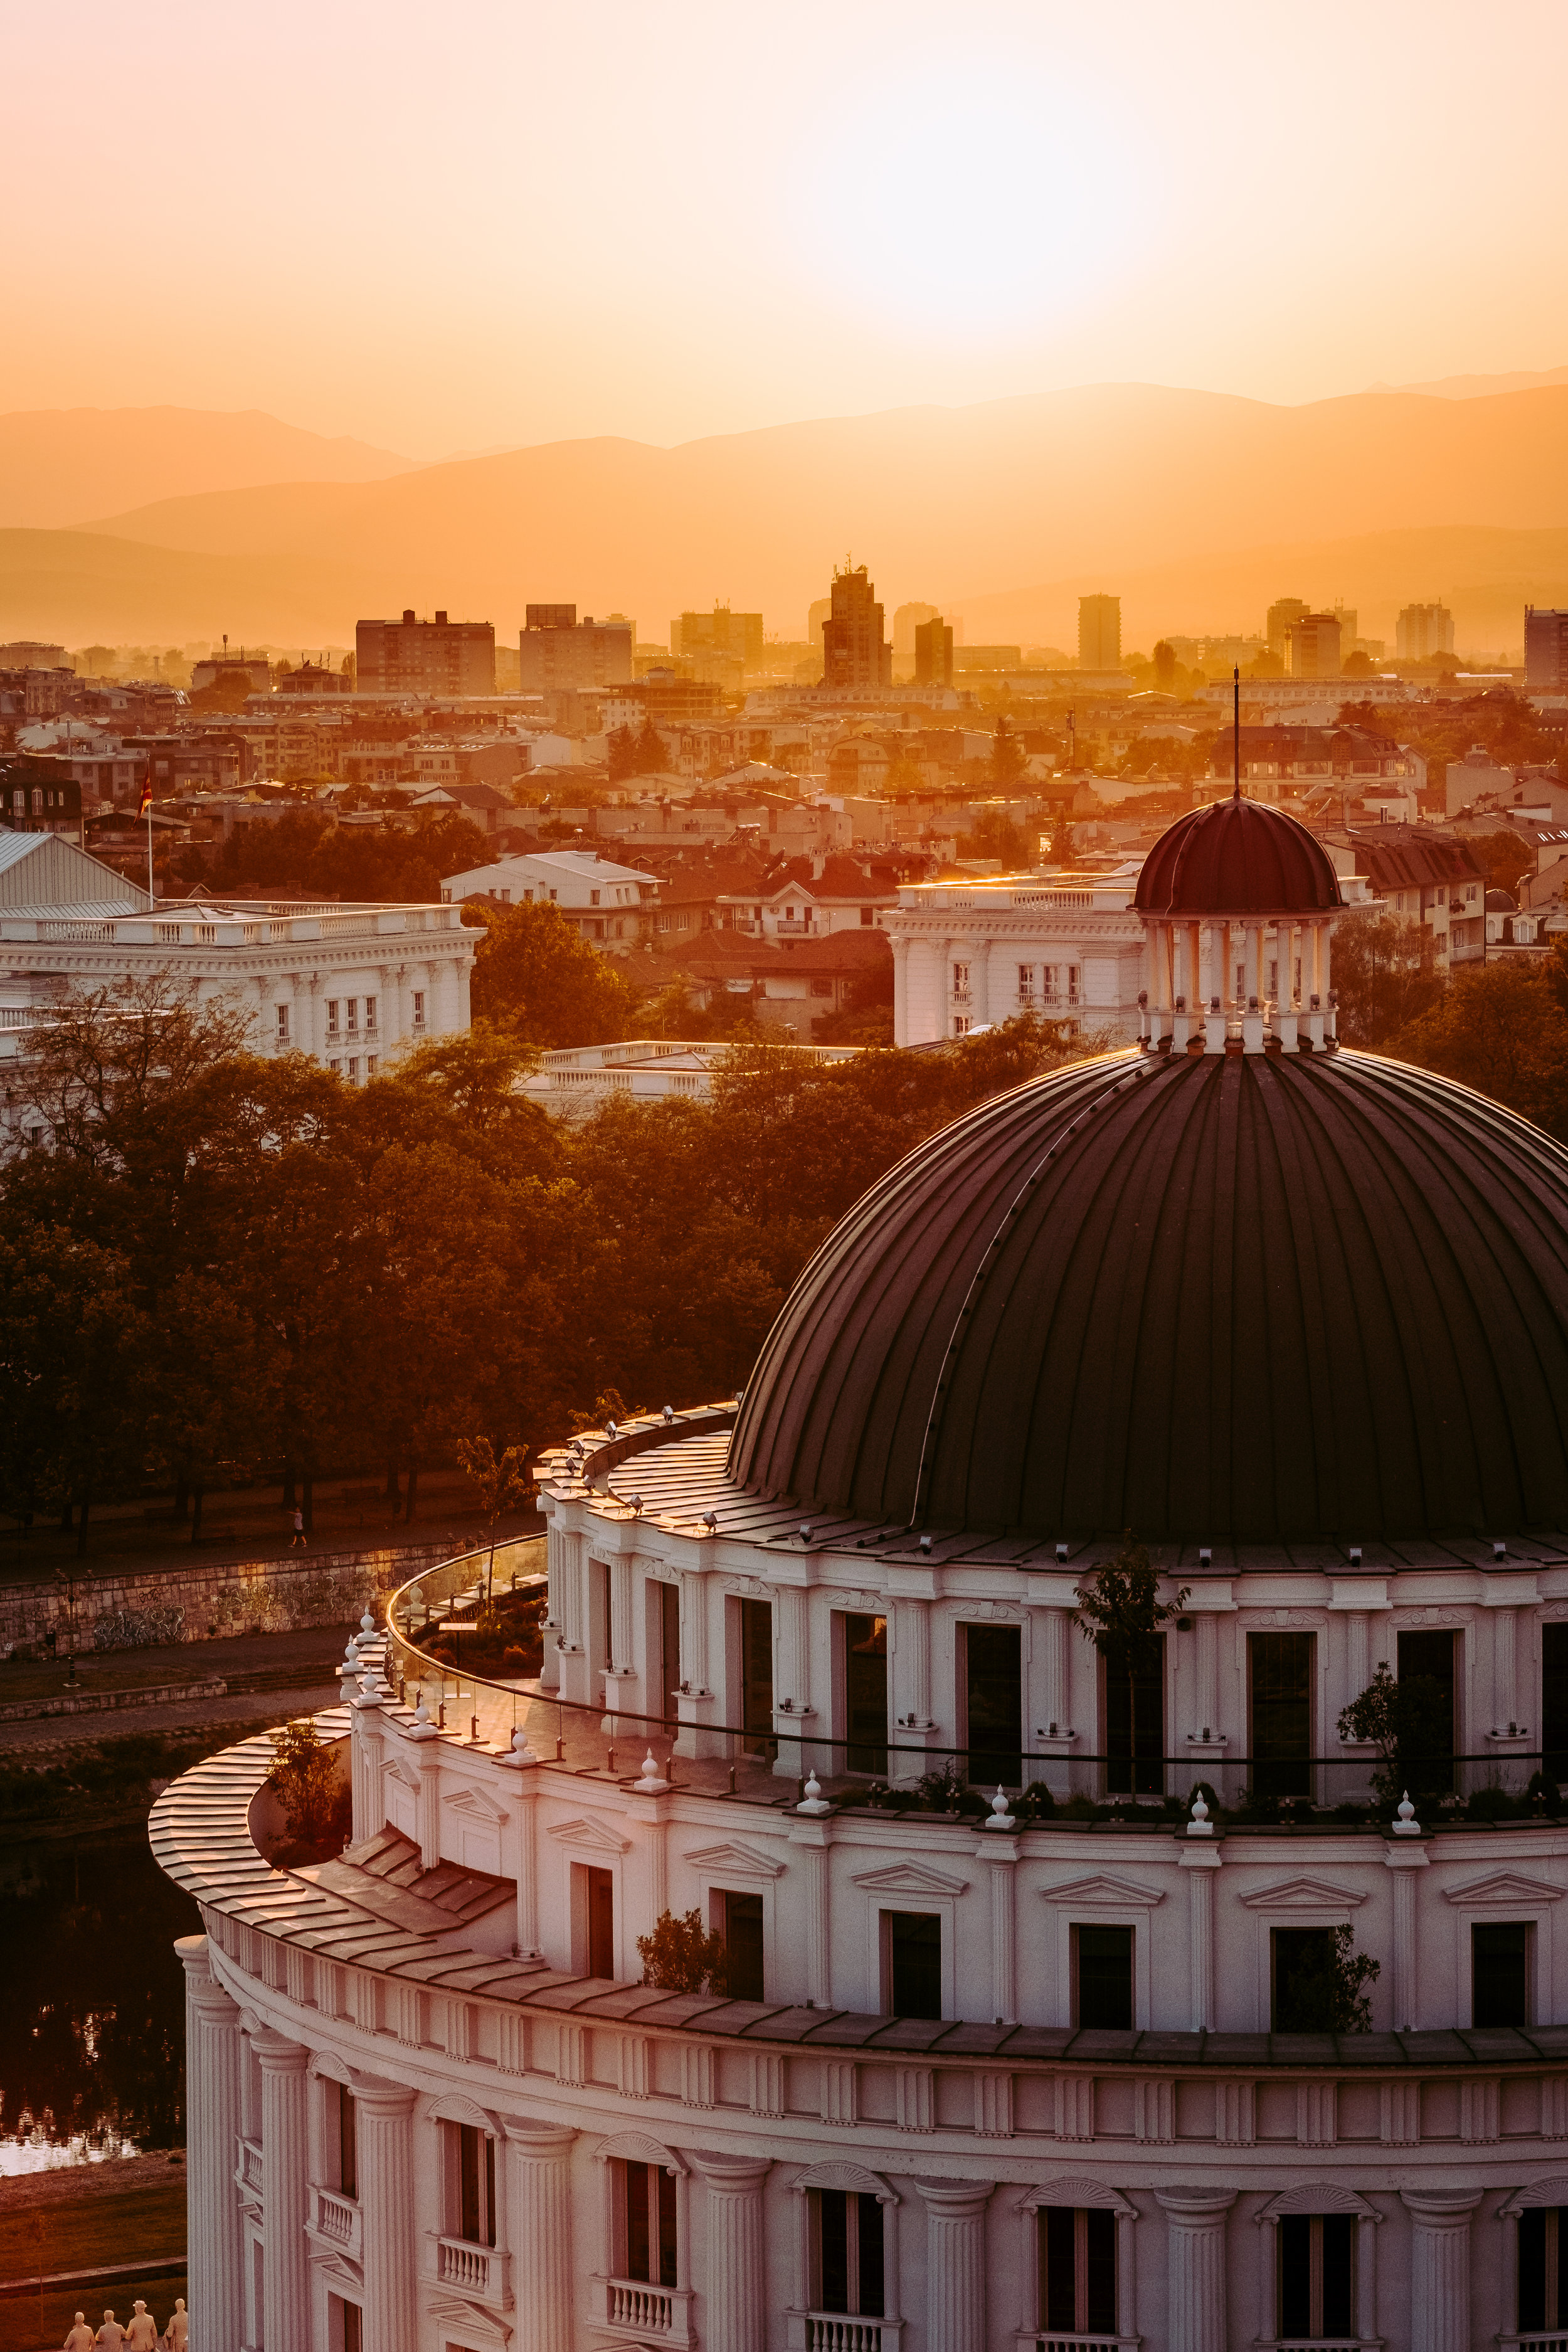 Summer sunset in Skopje . Skopje, Macedonia. August 27, 2017.